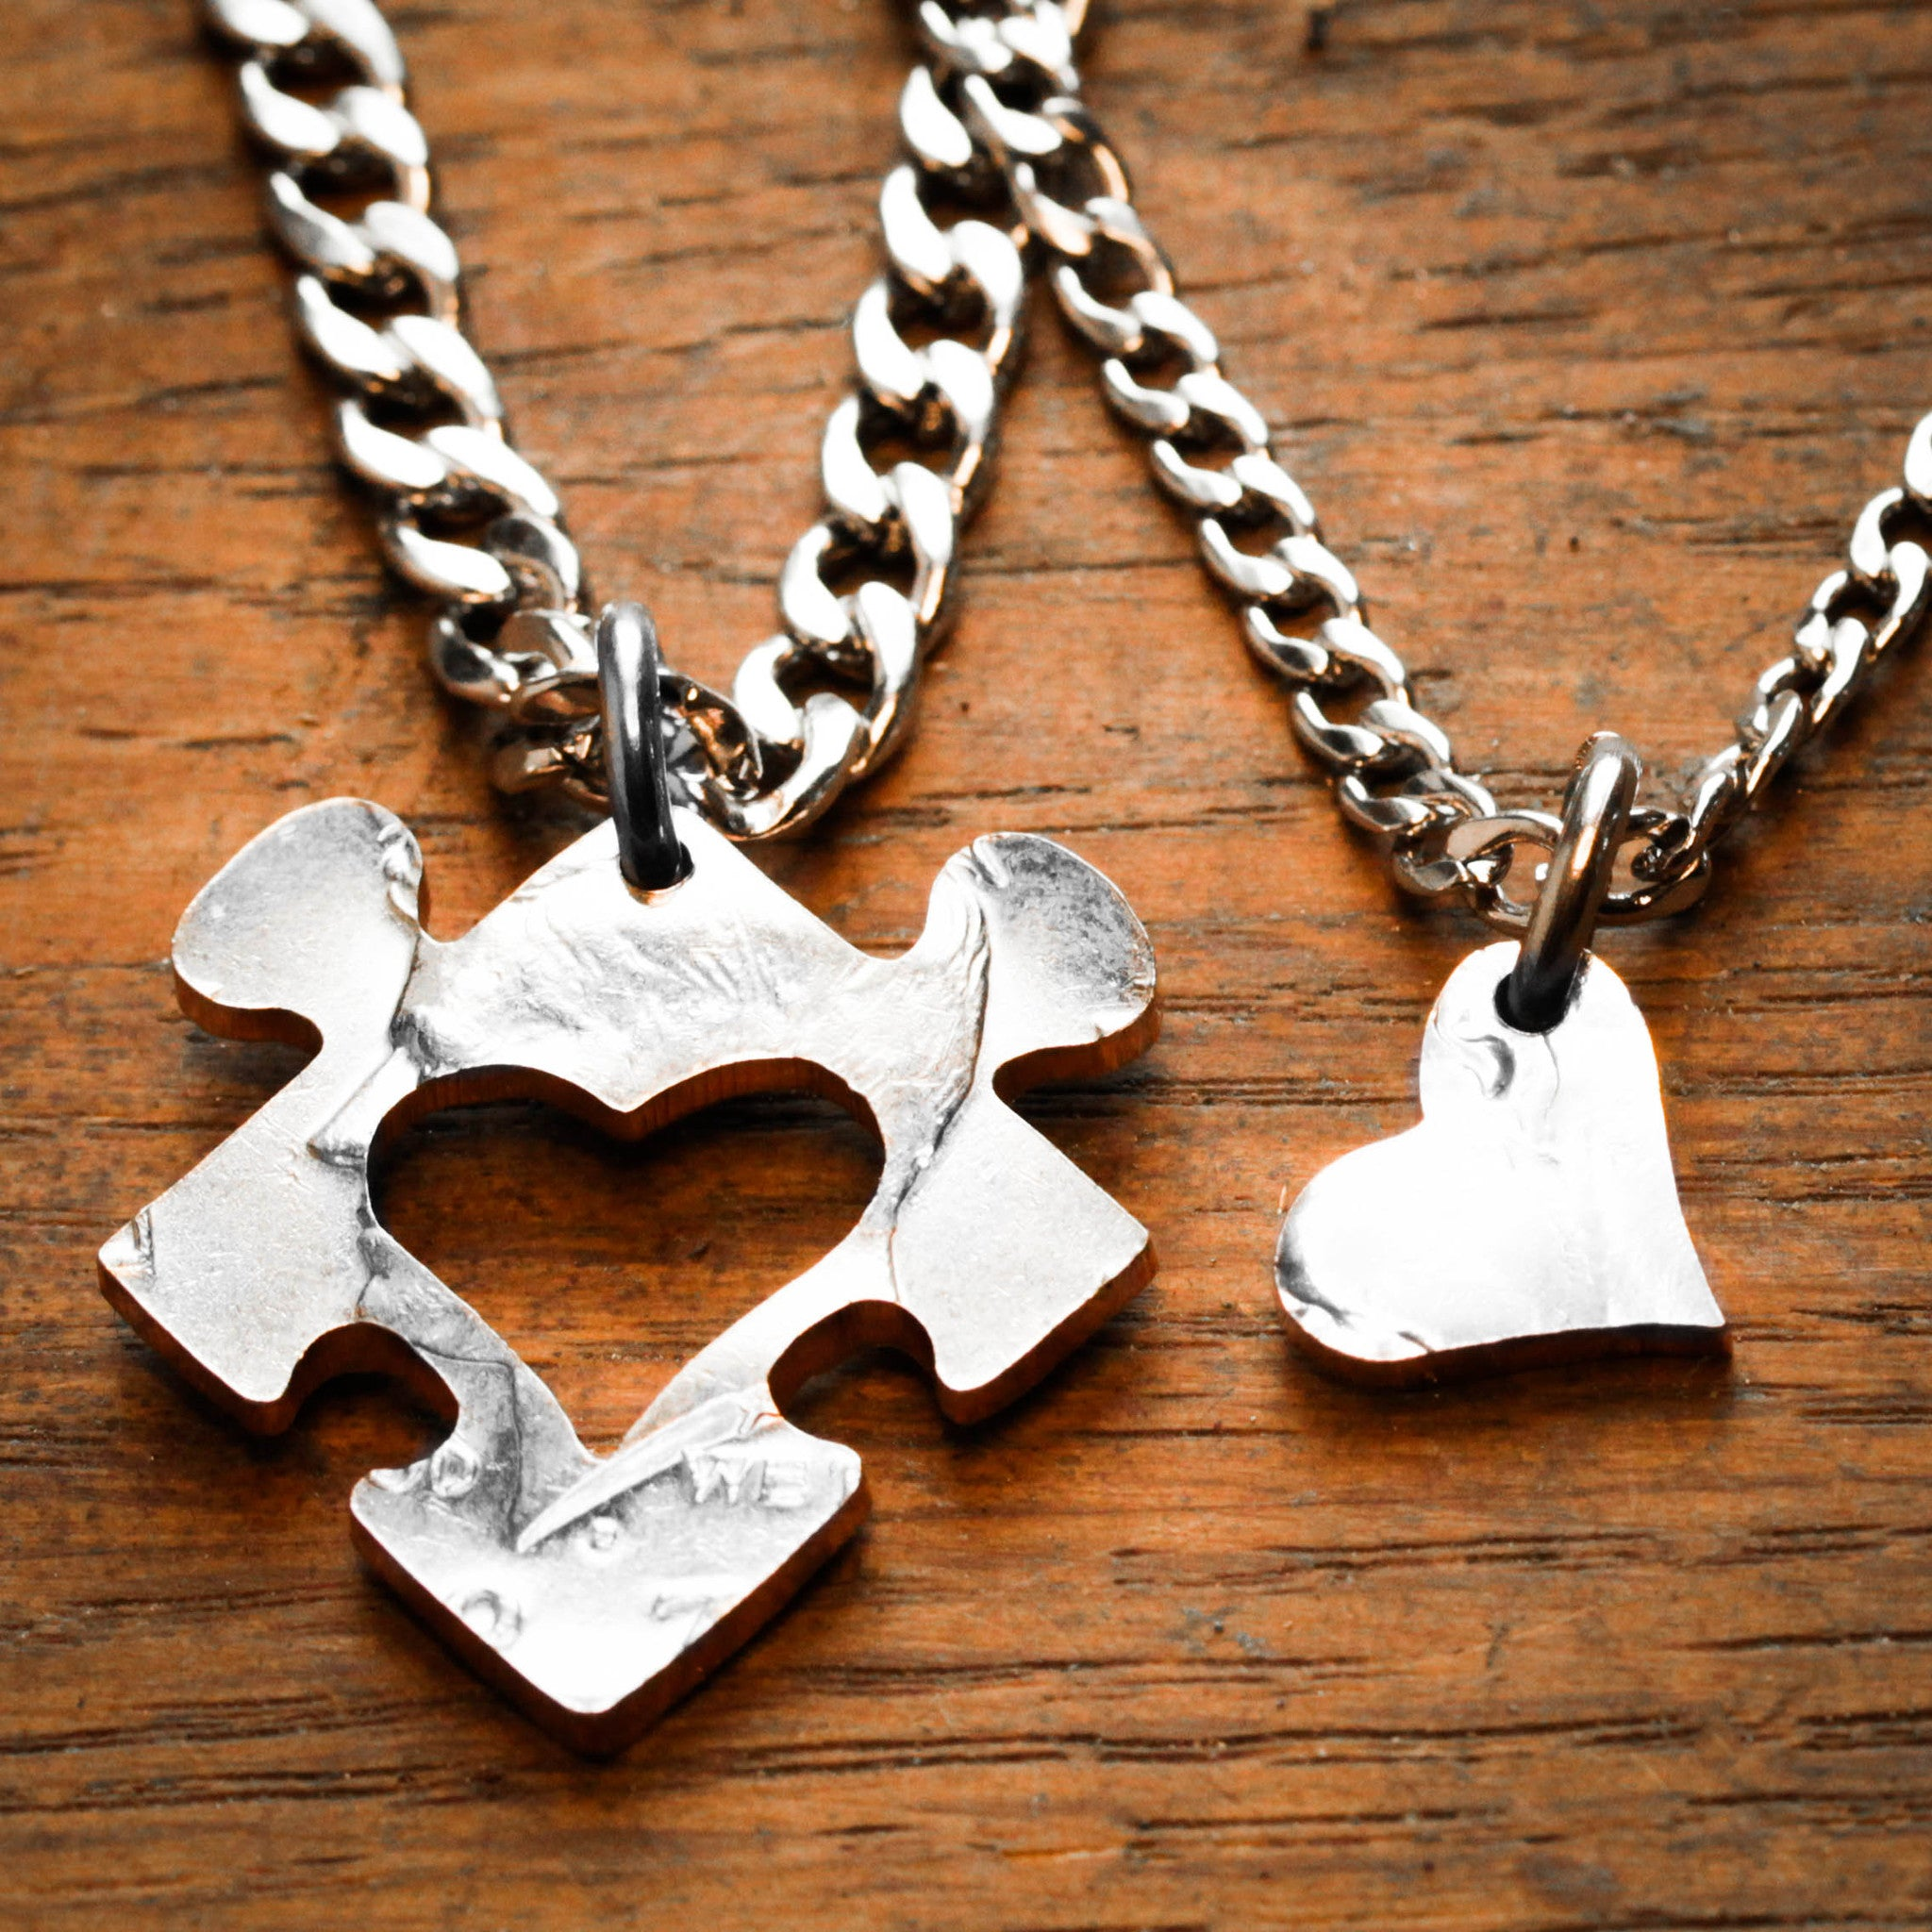 762a0b3859287 Heart Puzzle Piece with Initials Couples Necklaces, Custom cut ...